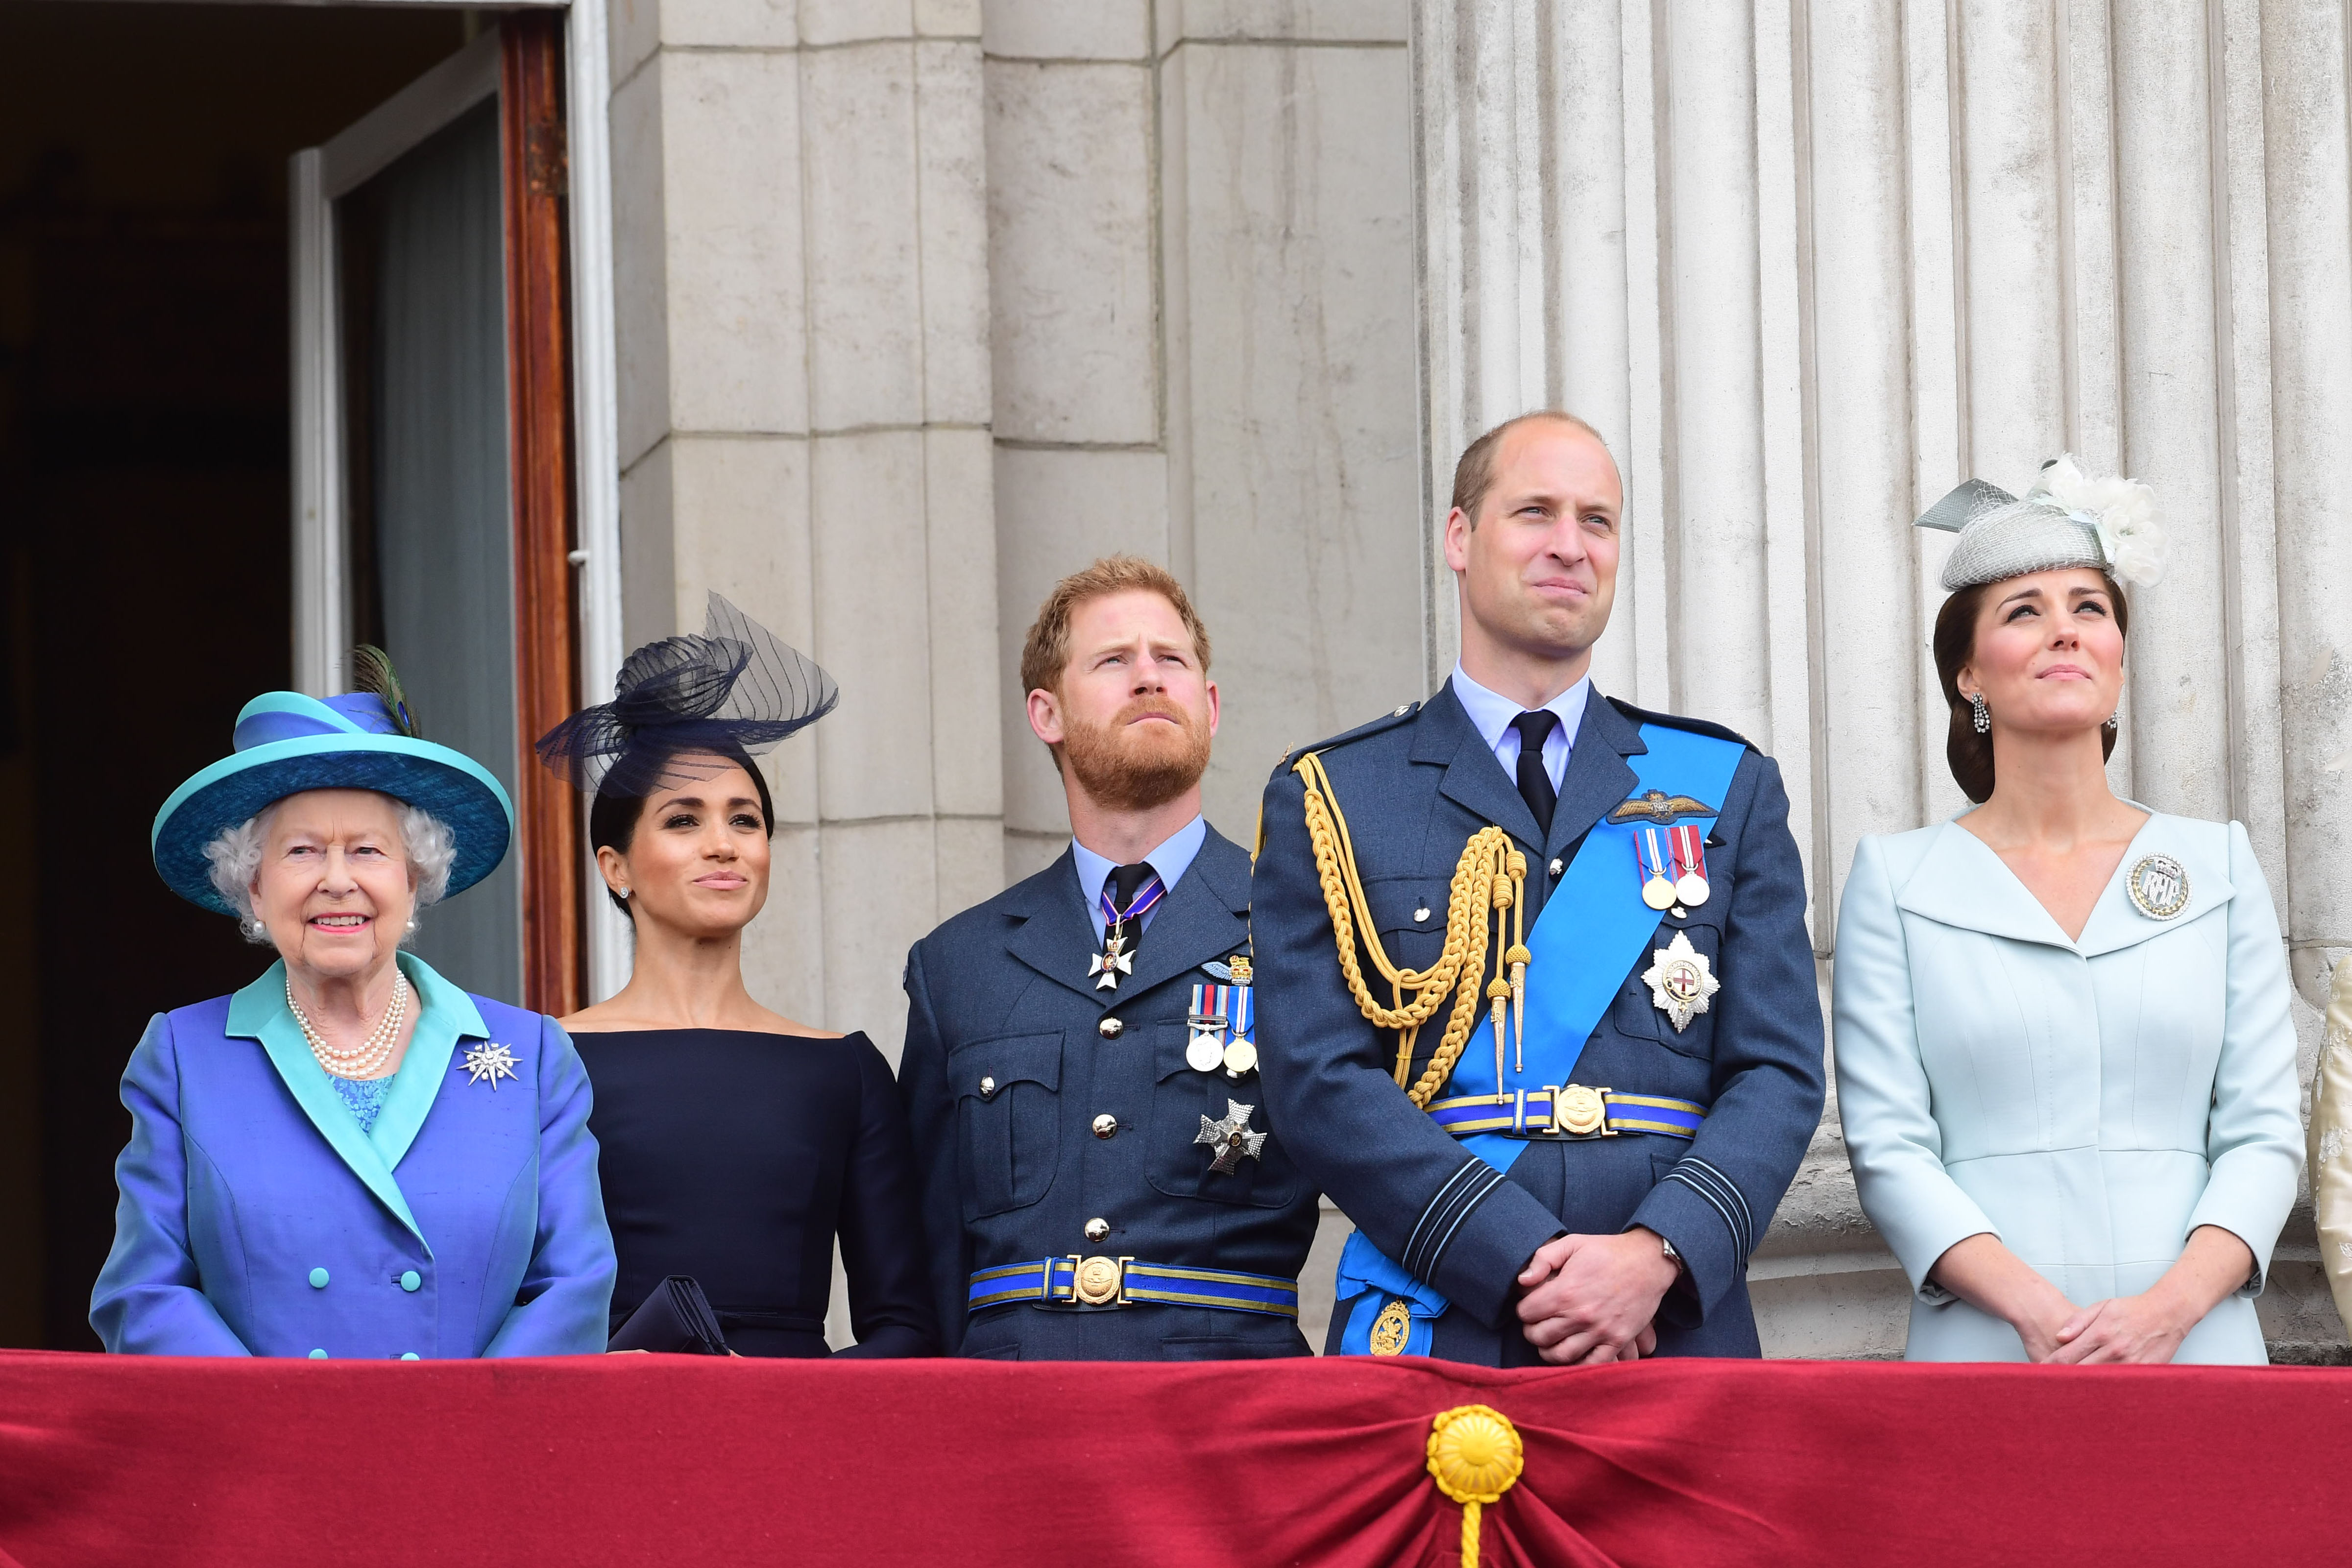 Queen Elizabeth II has agreed to let Prince Harry and Meghan Markle split their time between Canada and the UK.